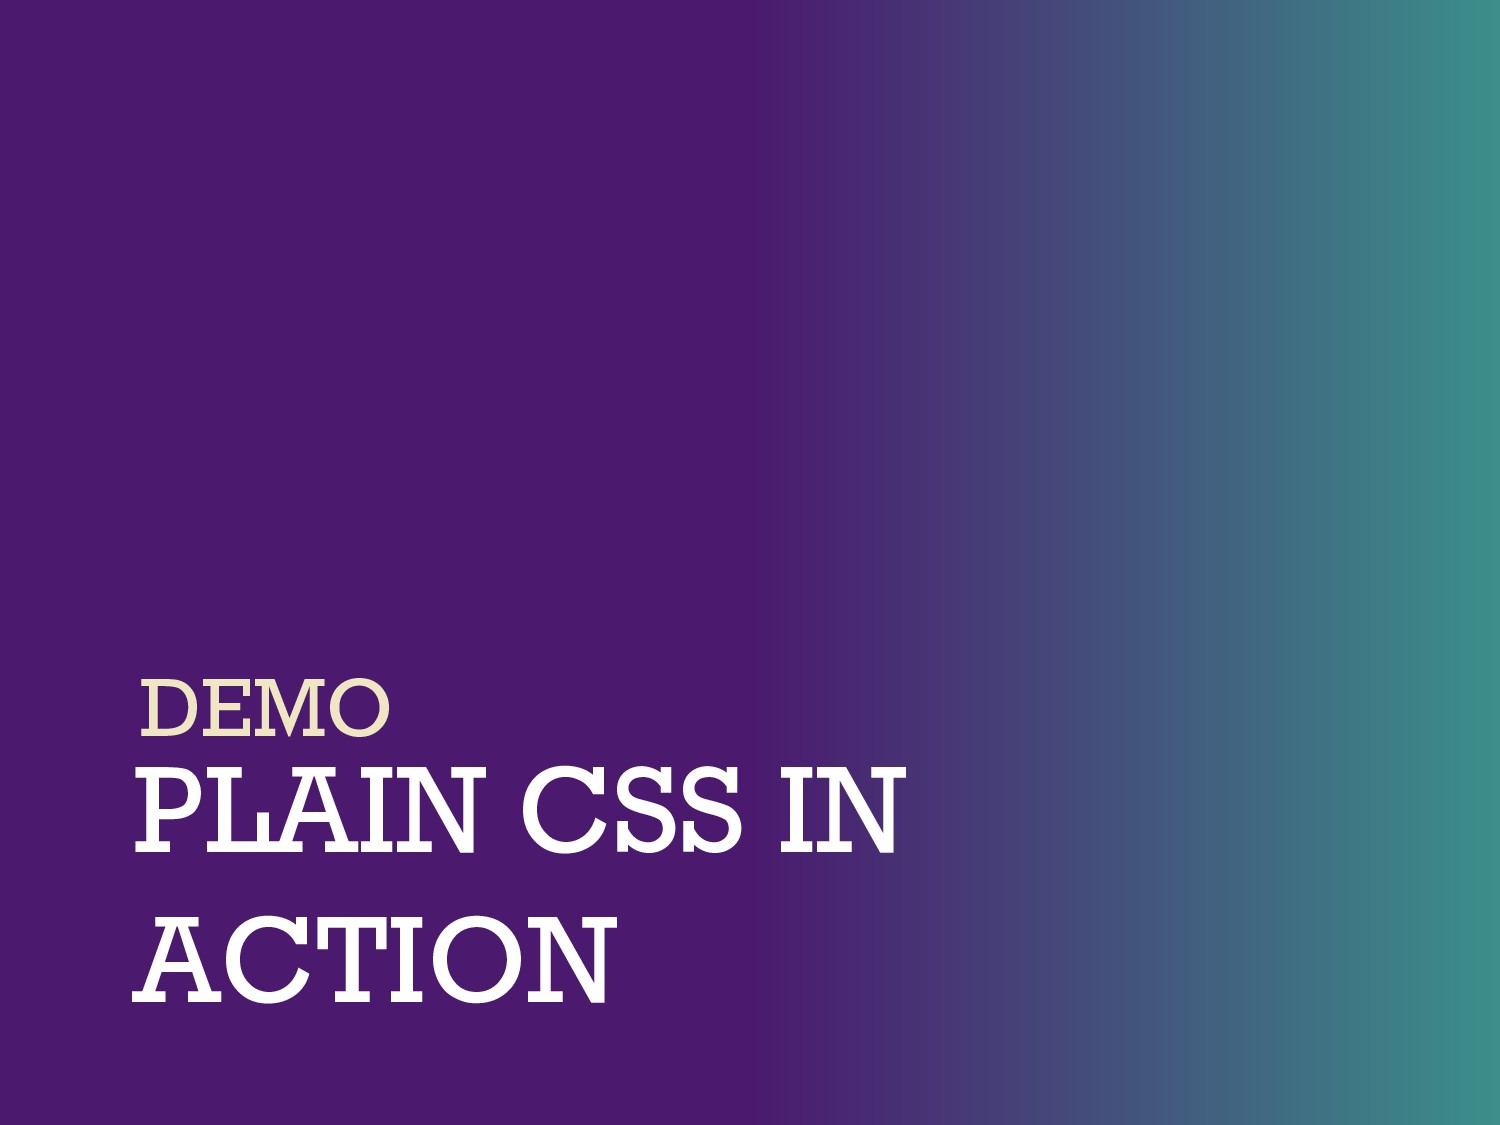 PLAIN CSS IN ACTION DEMO